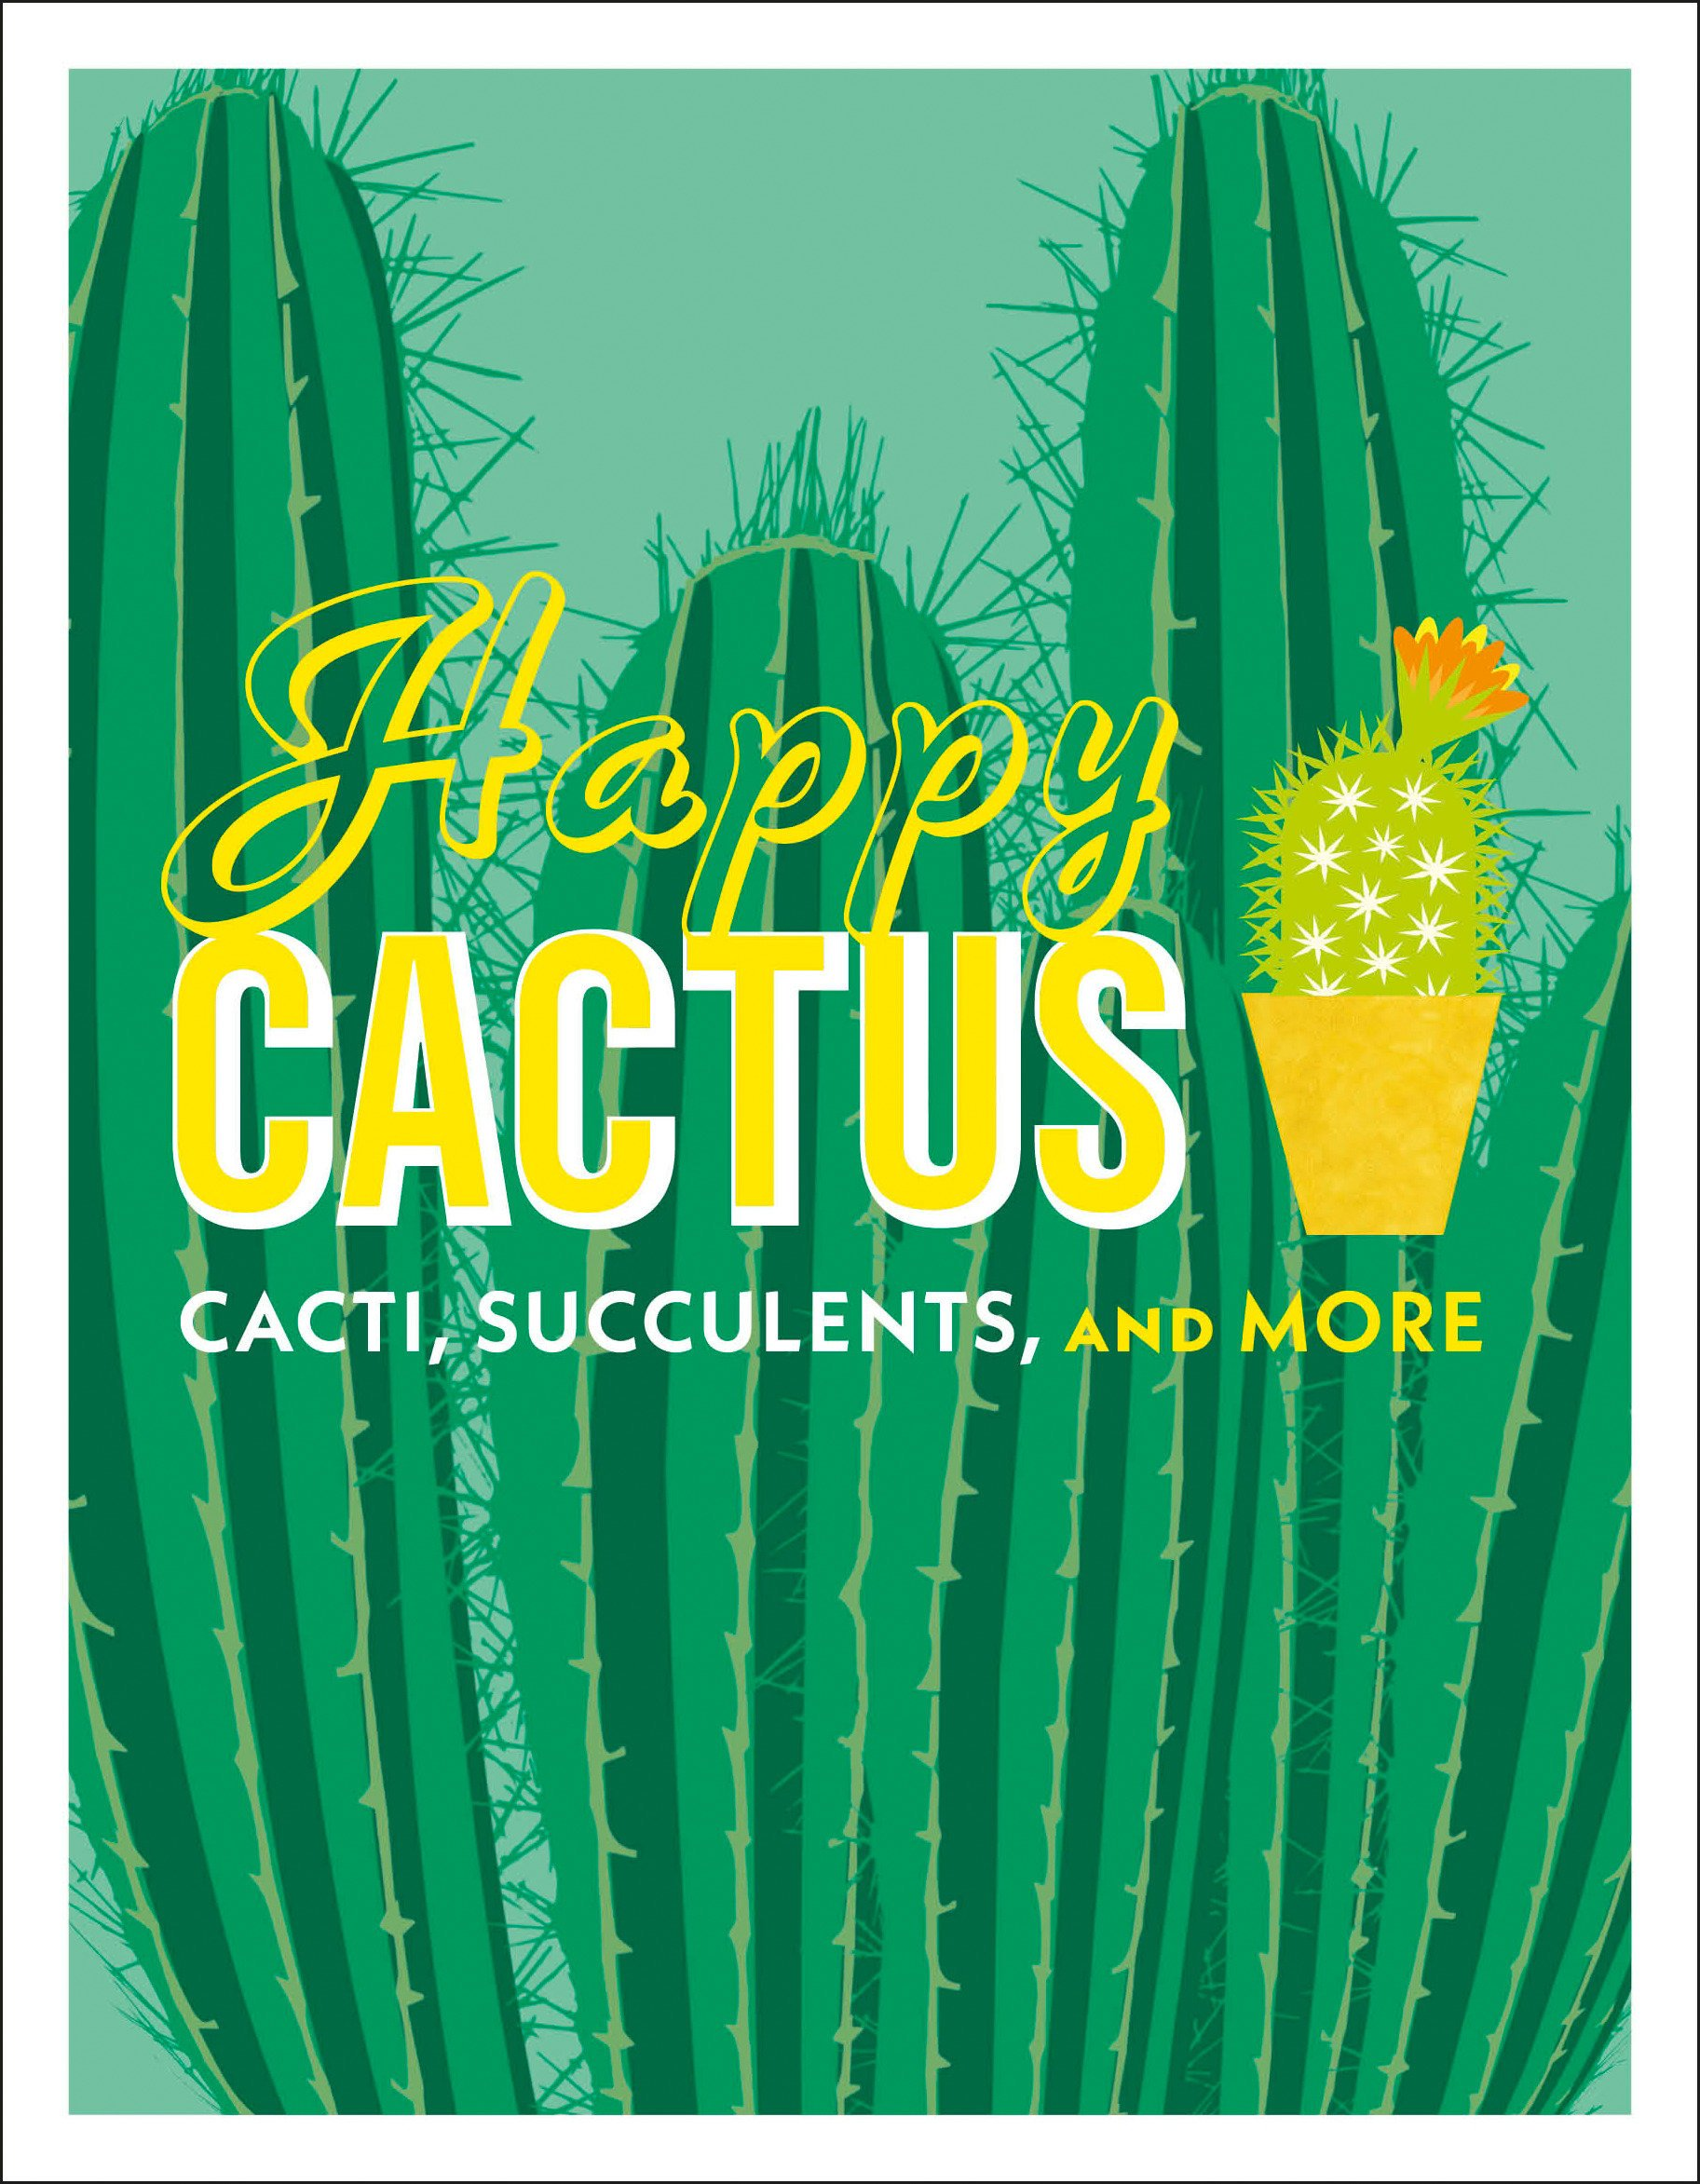 Happy Cactus: Cacti, Succulents, and More